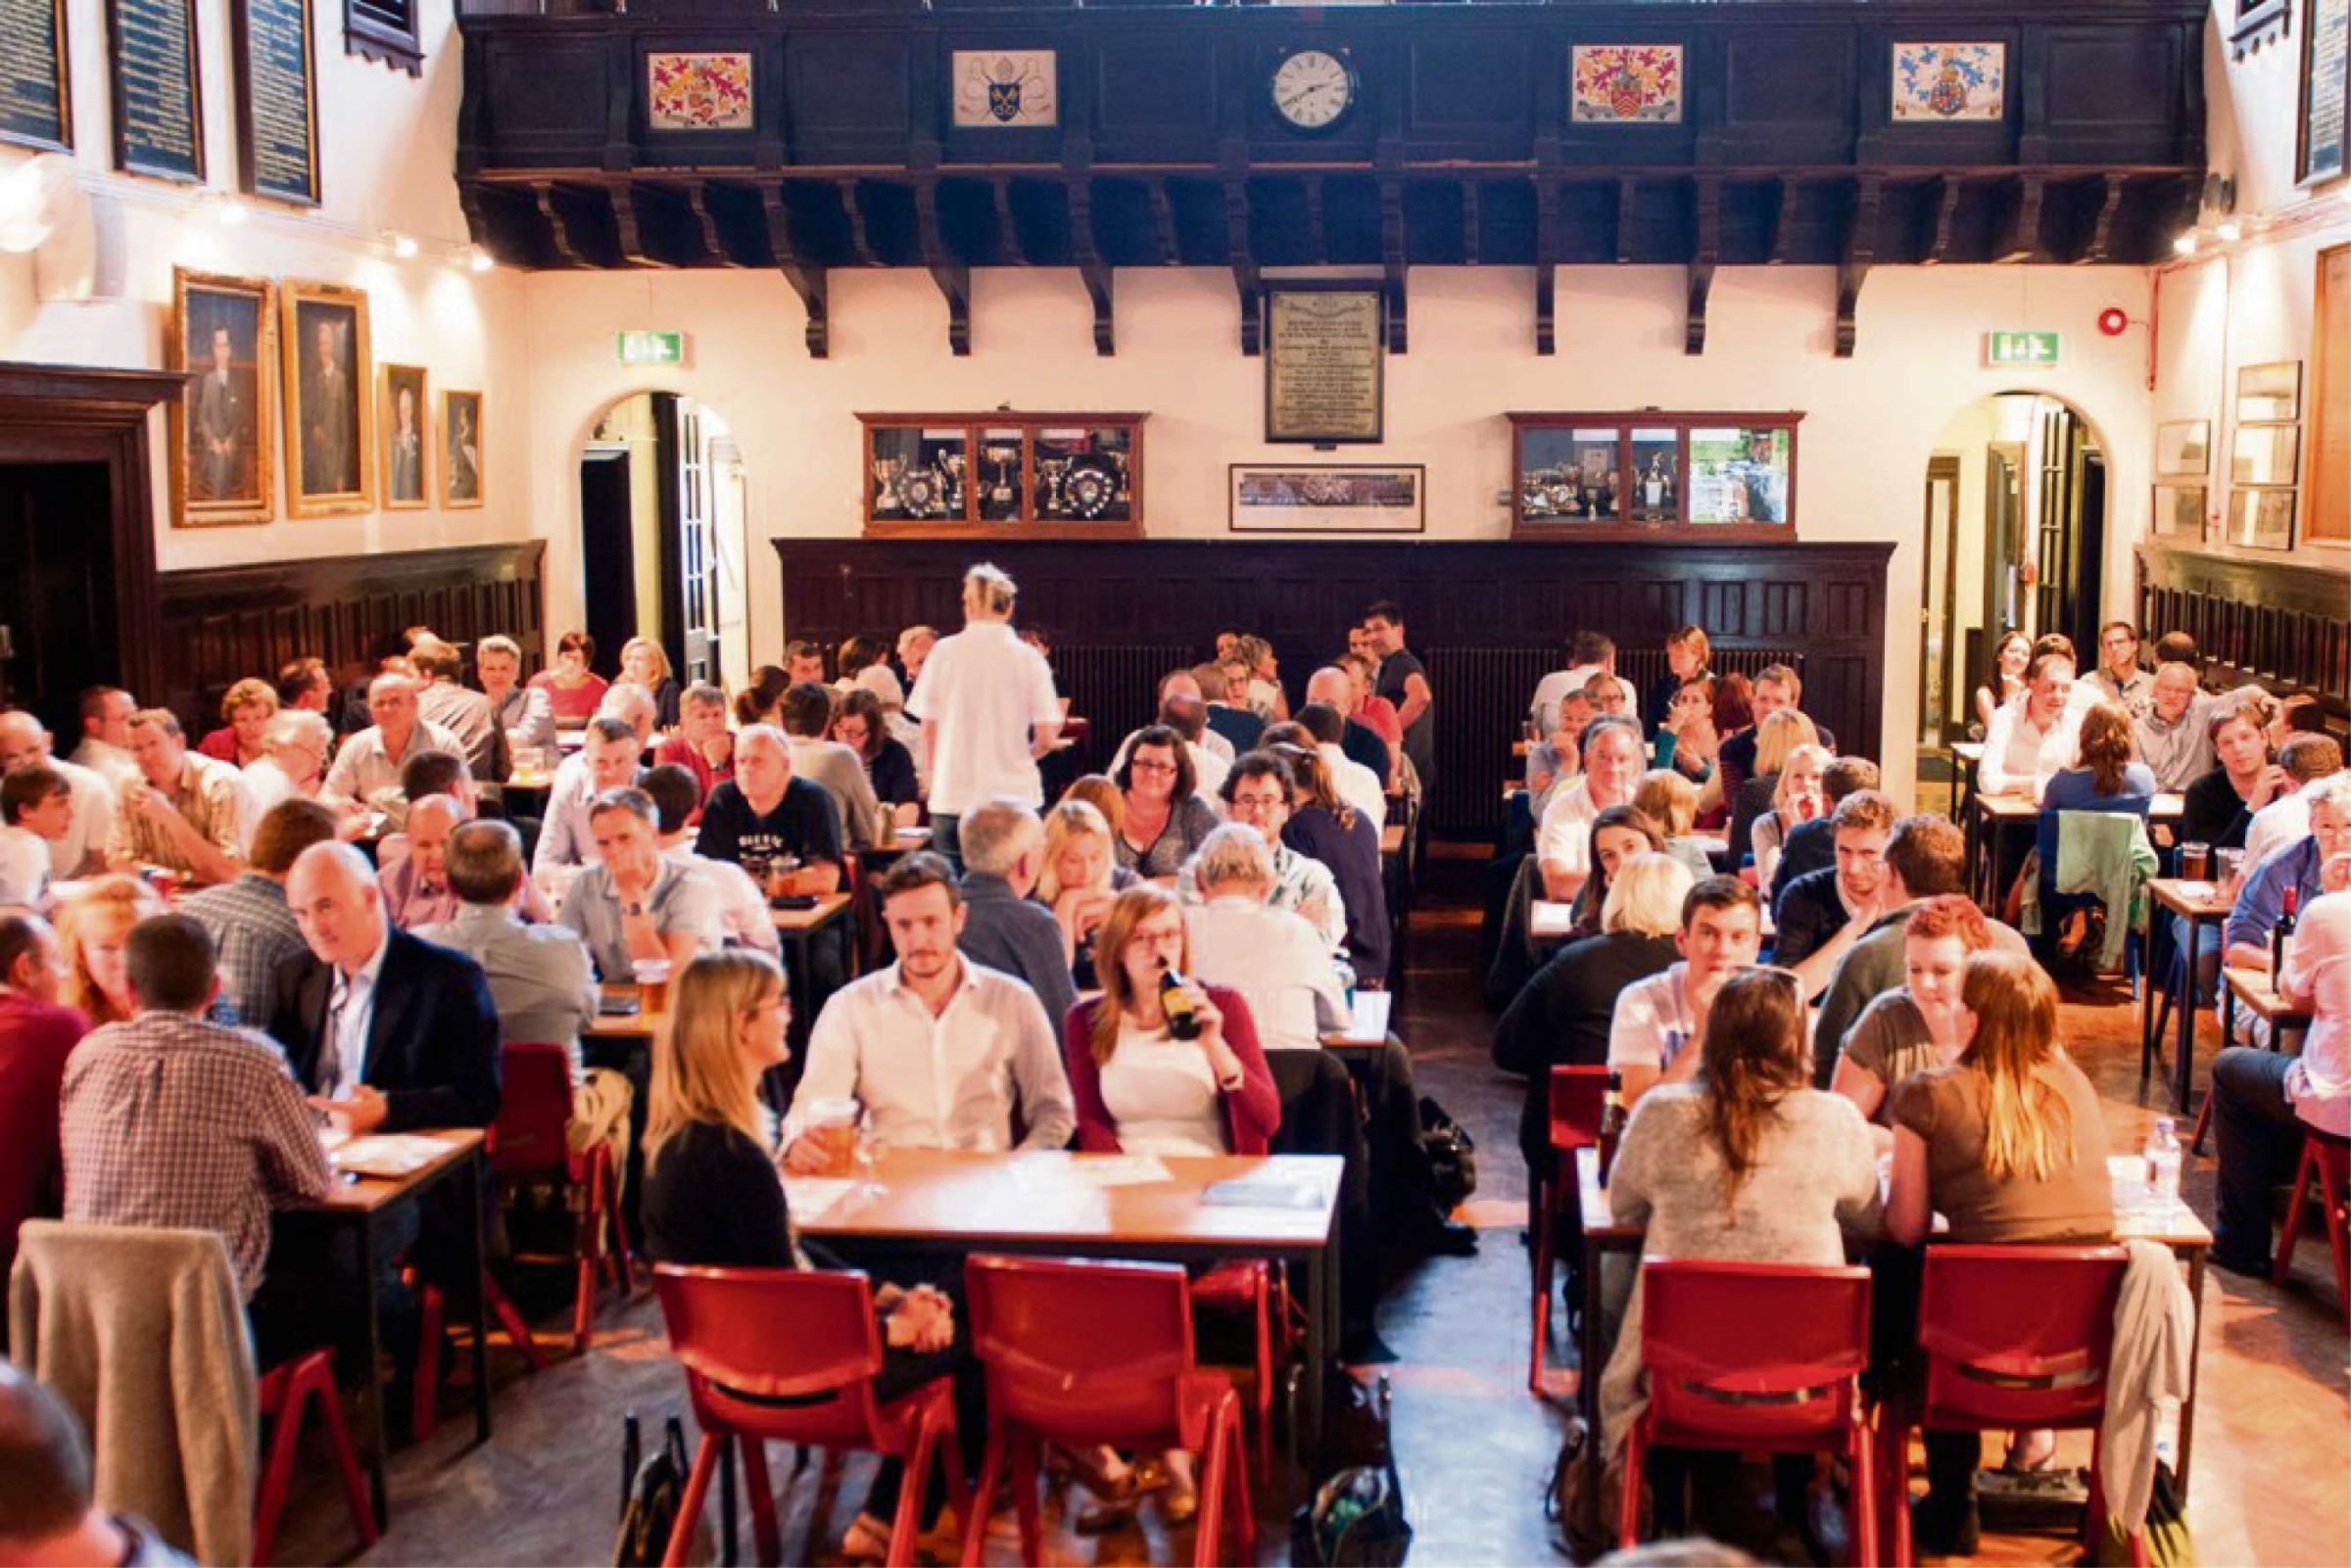 Charity quiz night raises £2,500